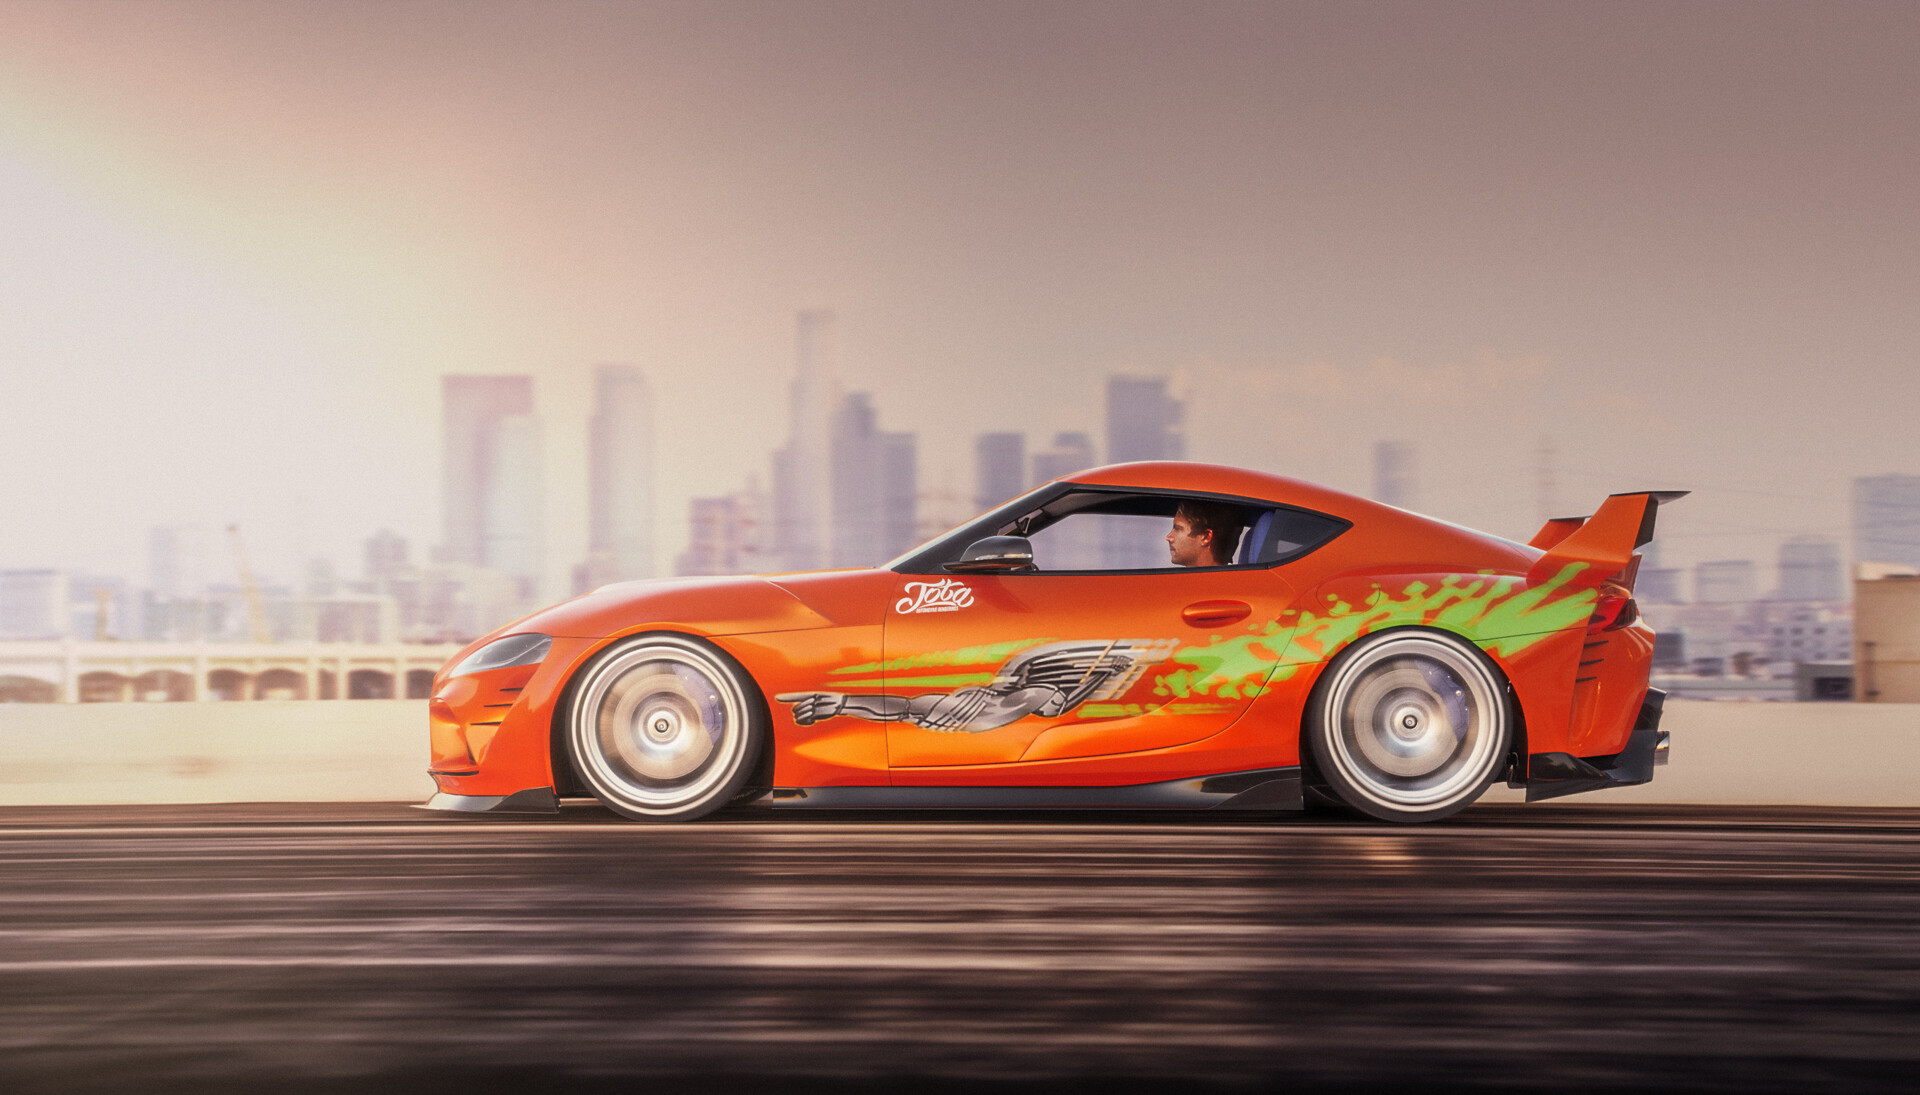 Paul Walker driving a homage to the classic Toyota Supra from the Fast and Furious movies.